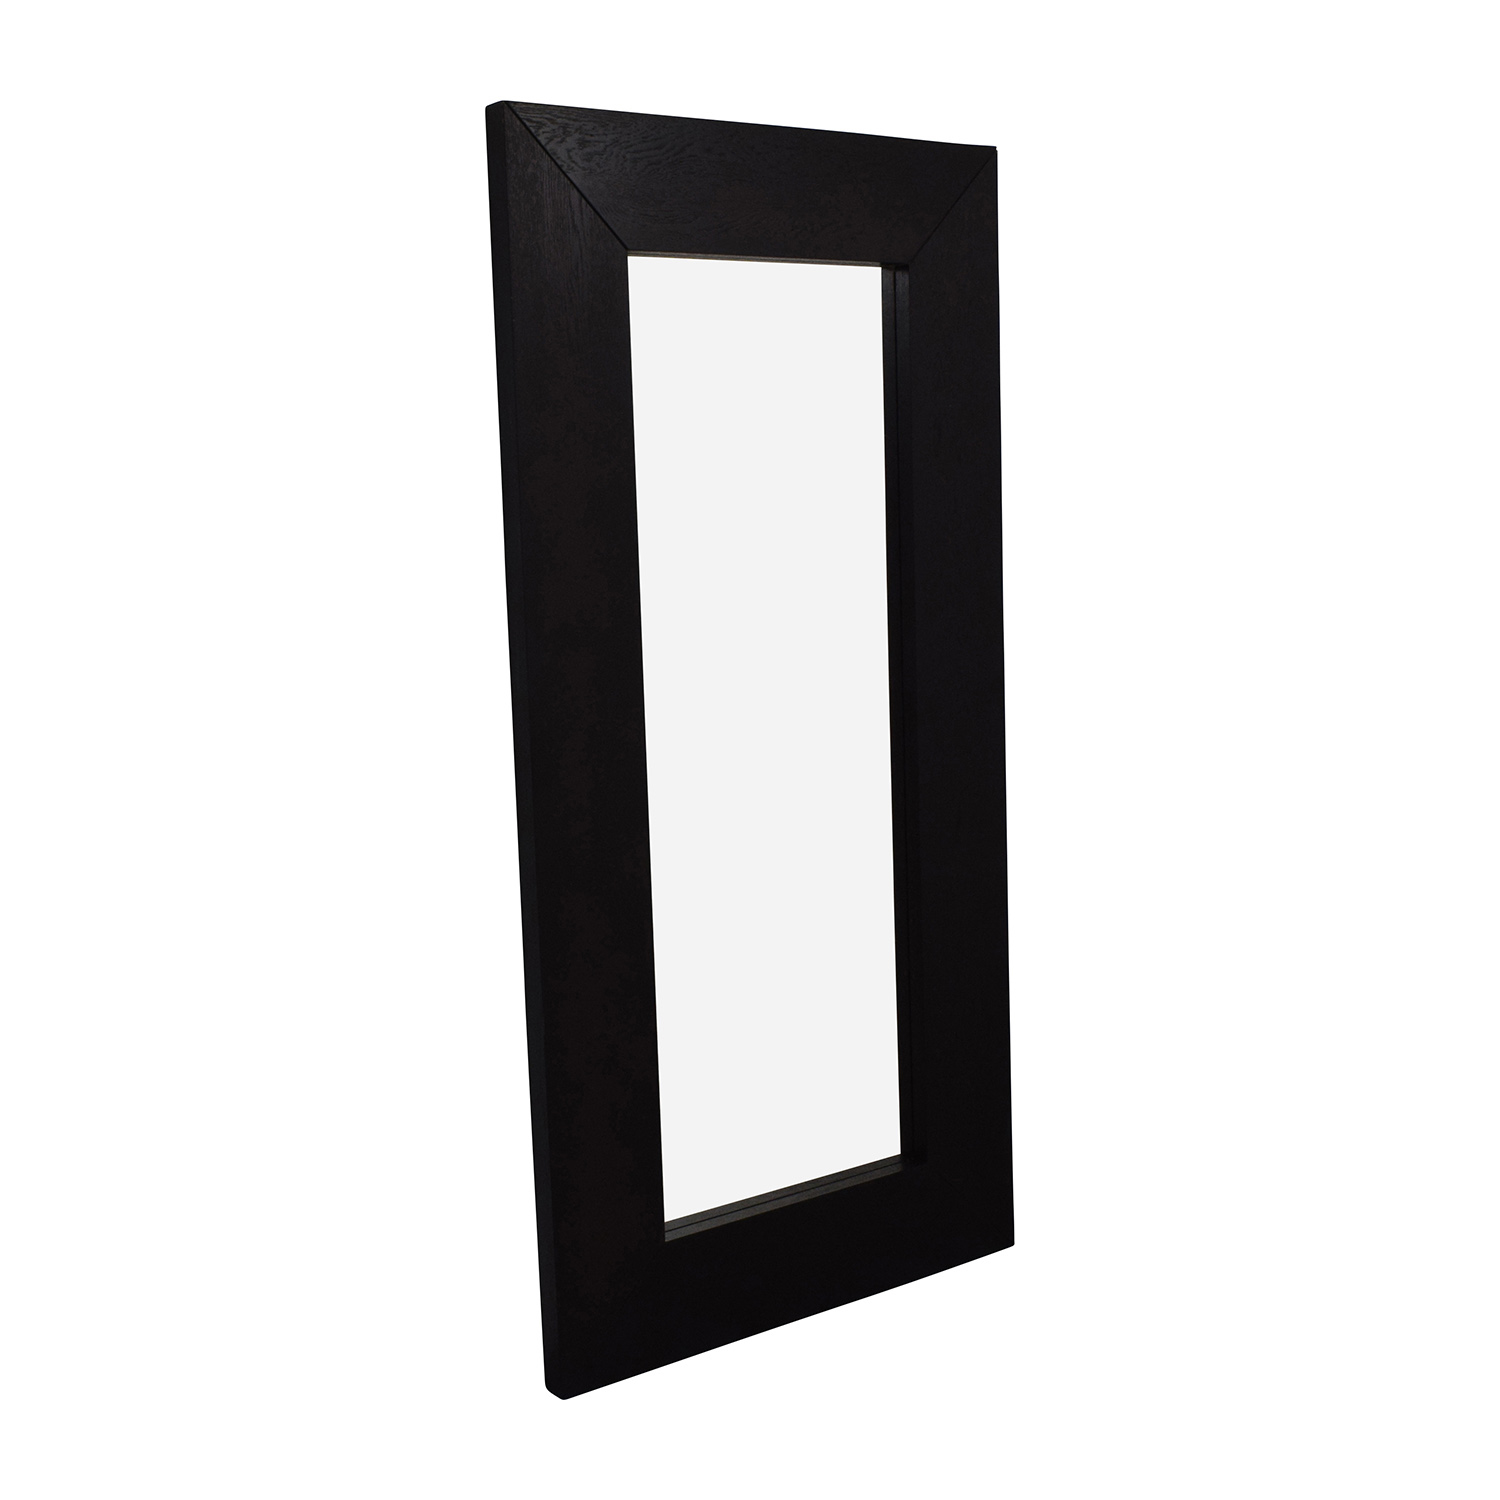 Crate and Barrel Crate & Barrel Large Standing Mirror Decor